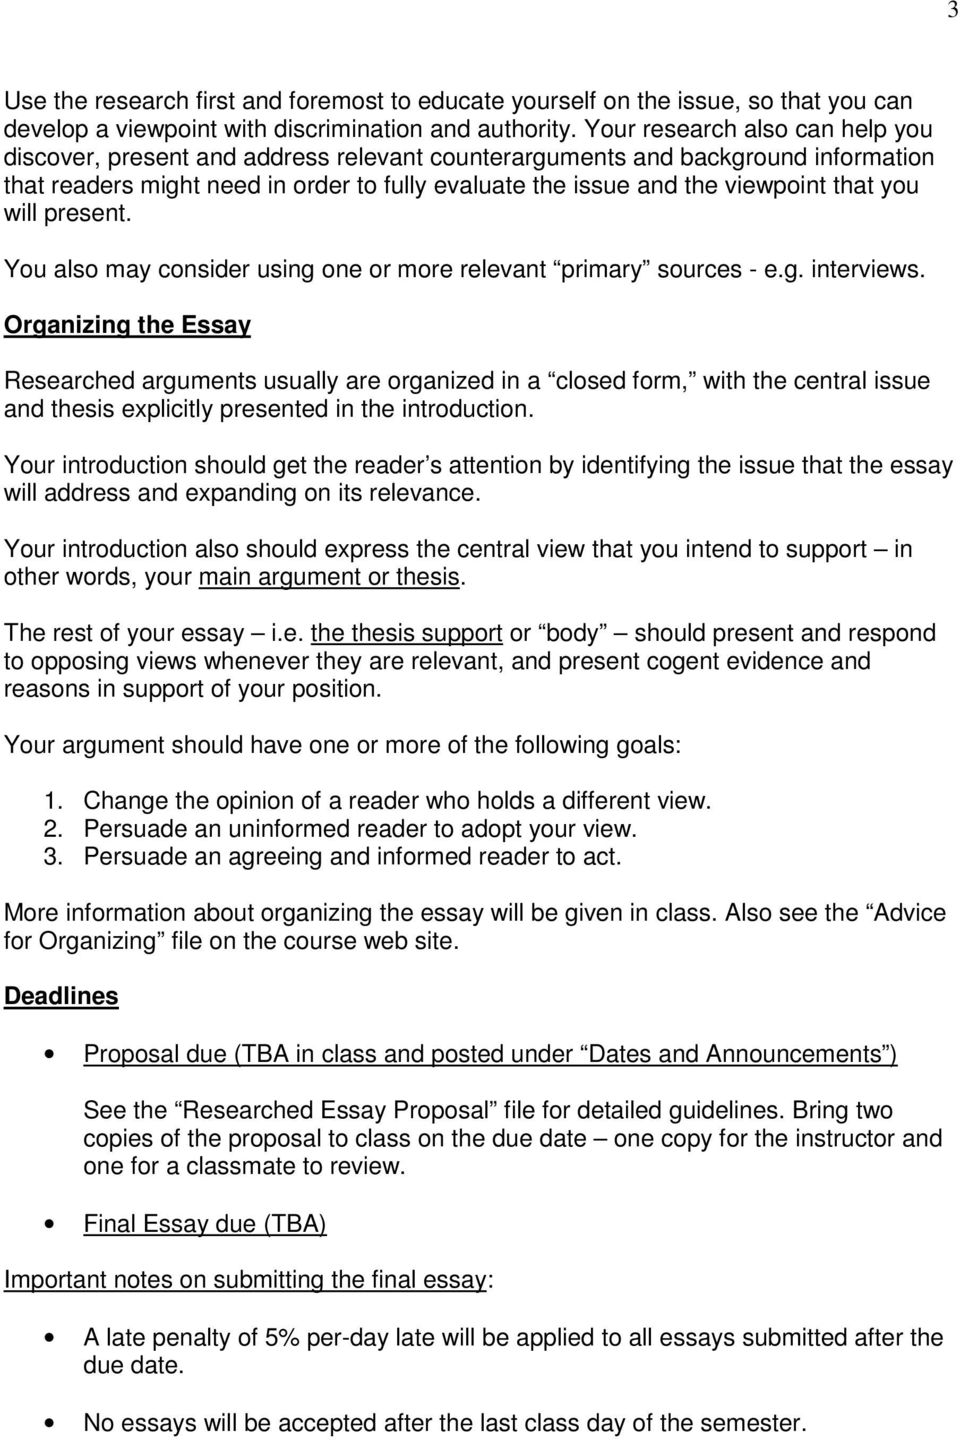 How to introduce primary sources in an essay academic thesis